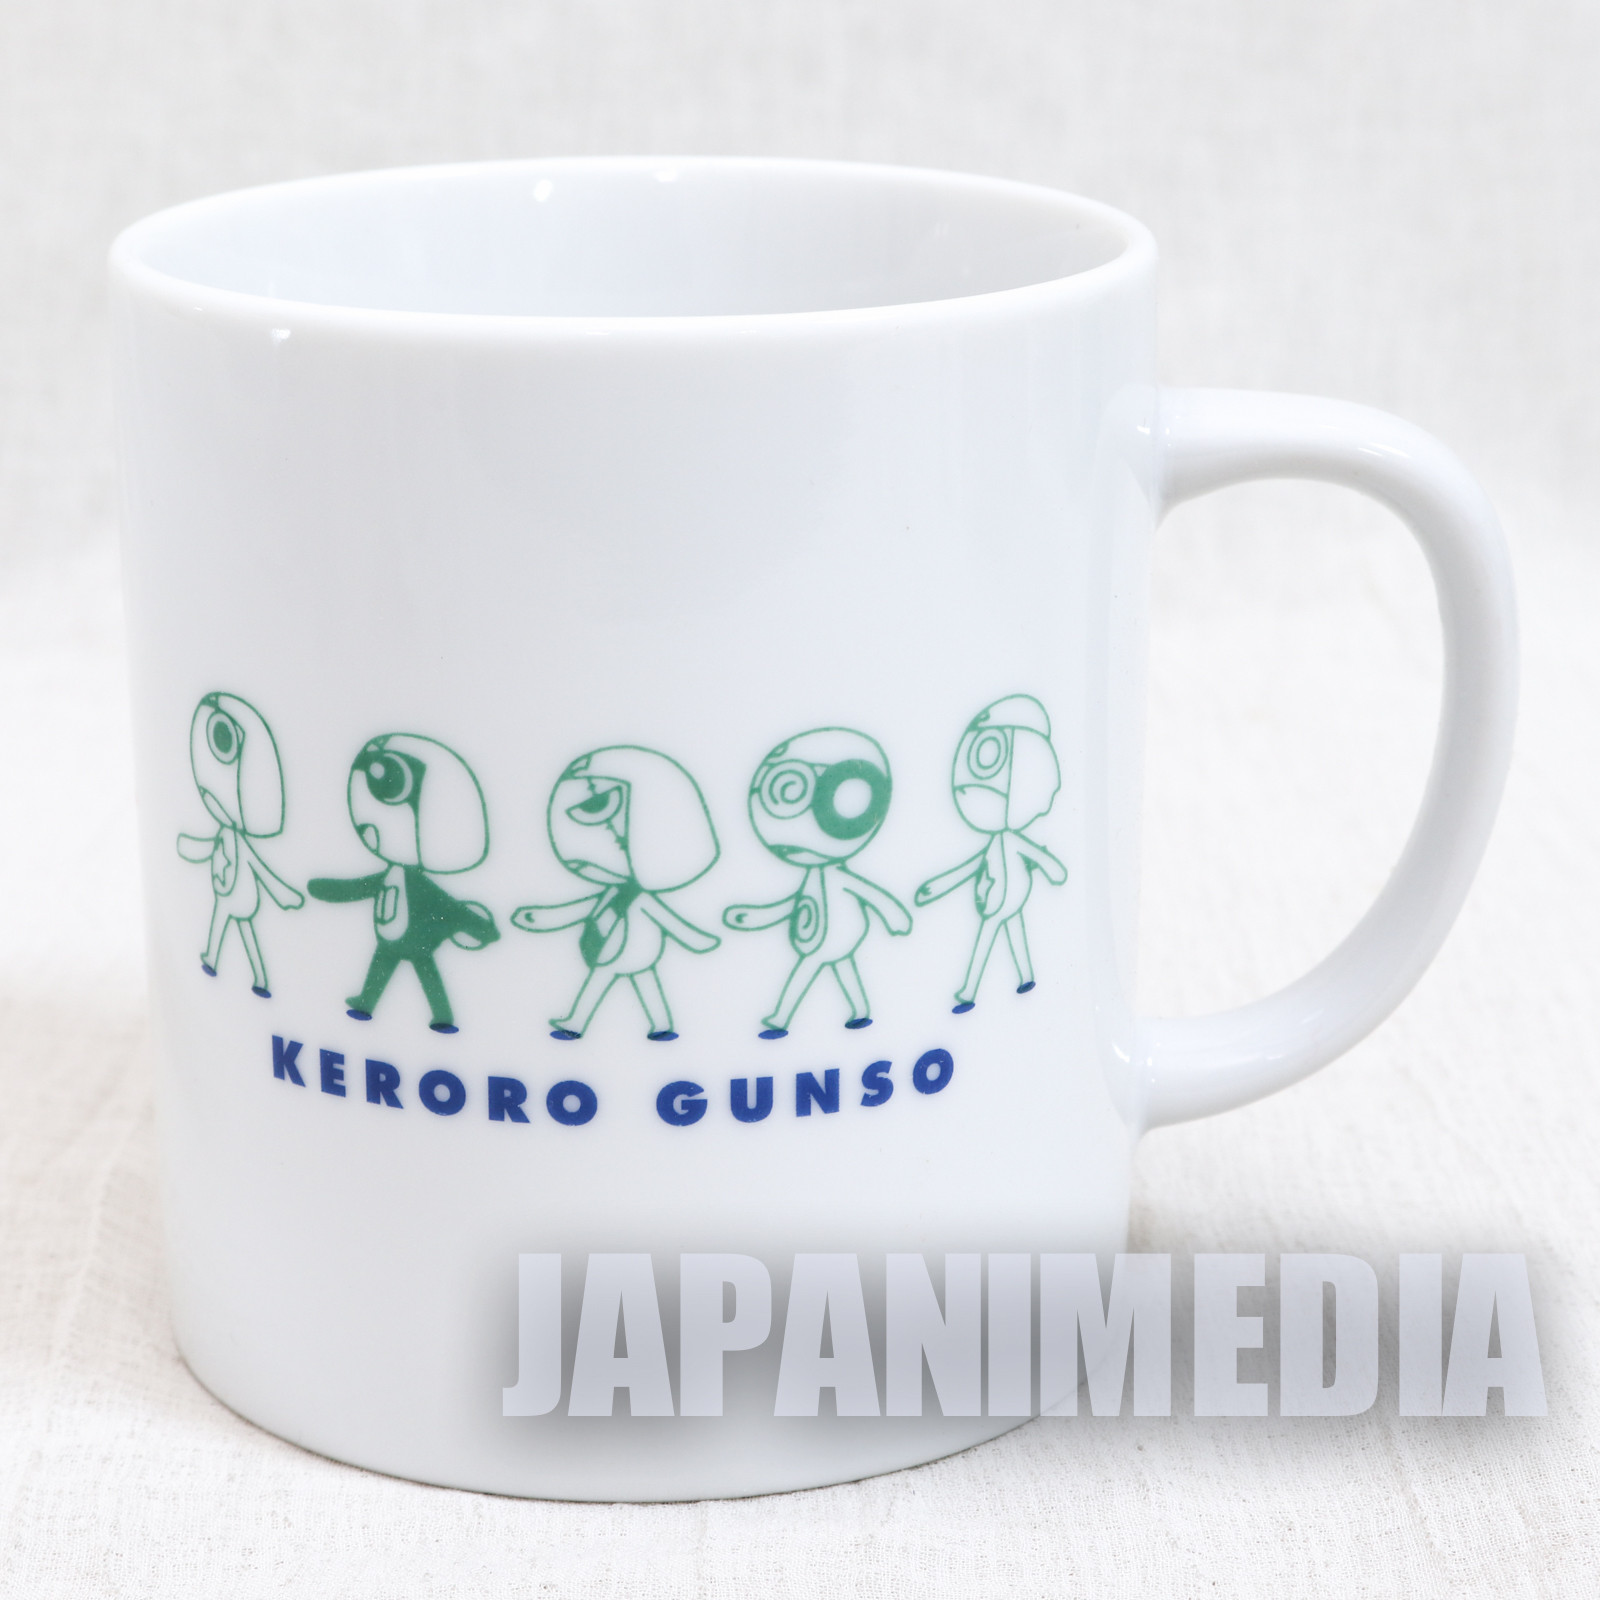 Sgt. Frog Keroro Gunso Anti Barrier Mug Movic JAPAN ANIME MANGA